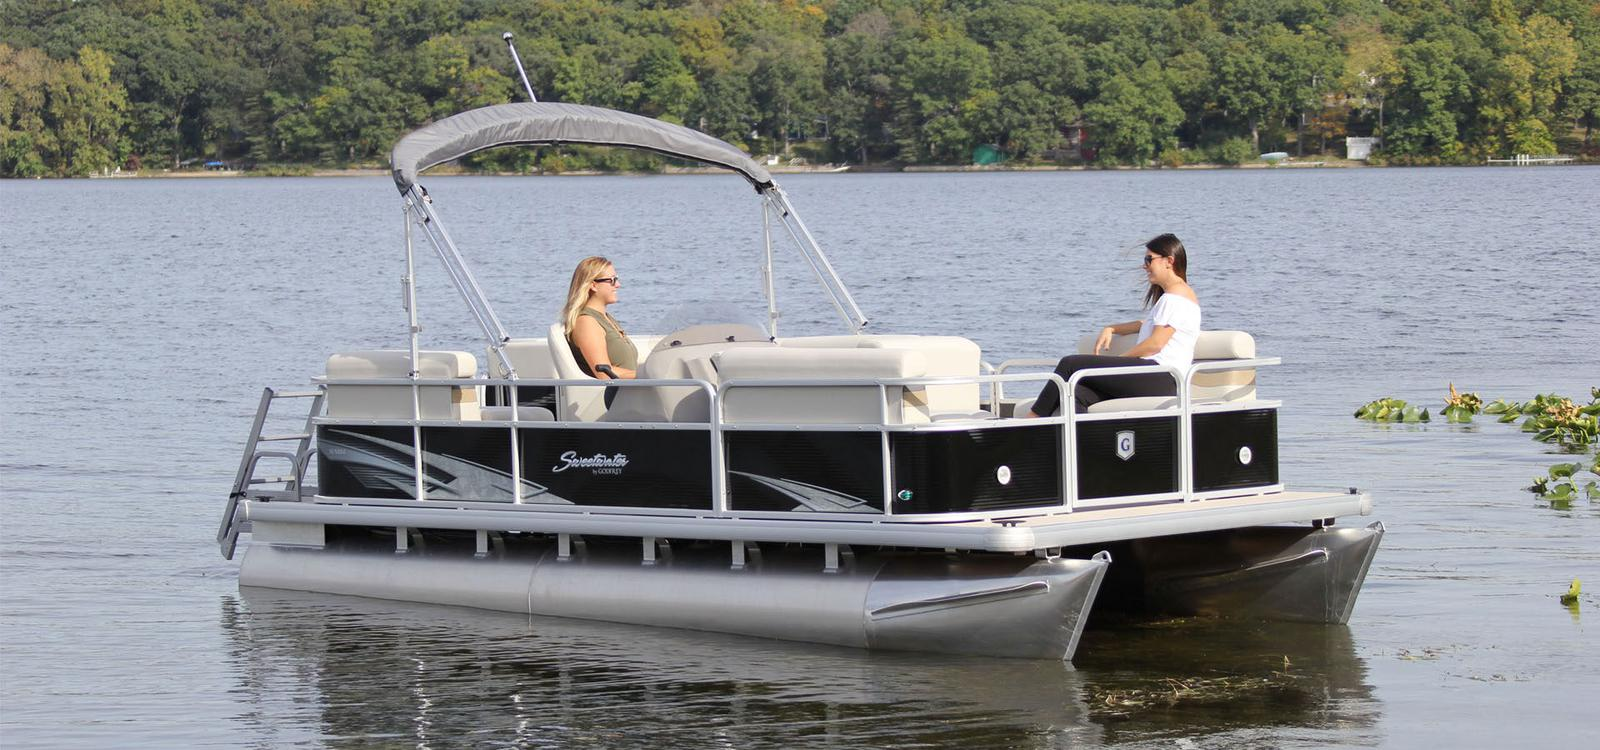 Sweetwater Sunrise 206 Cruise Lounger